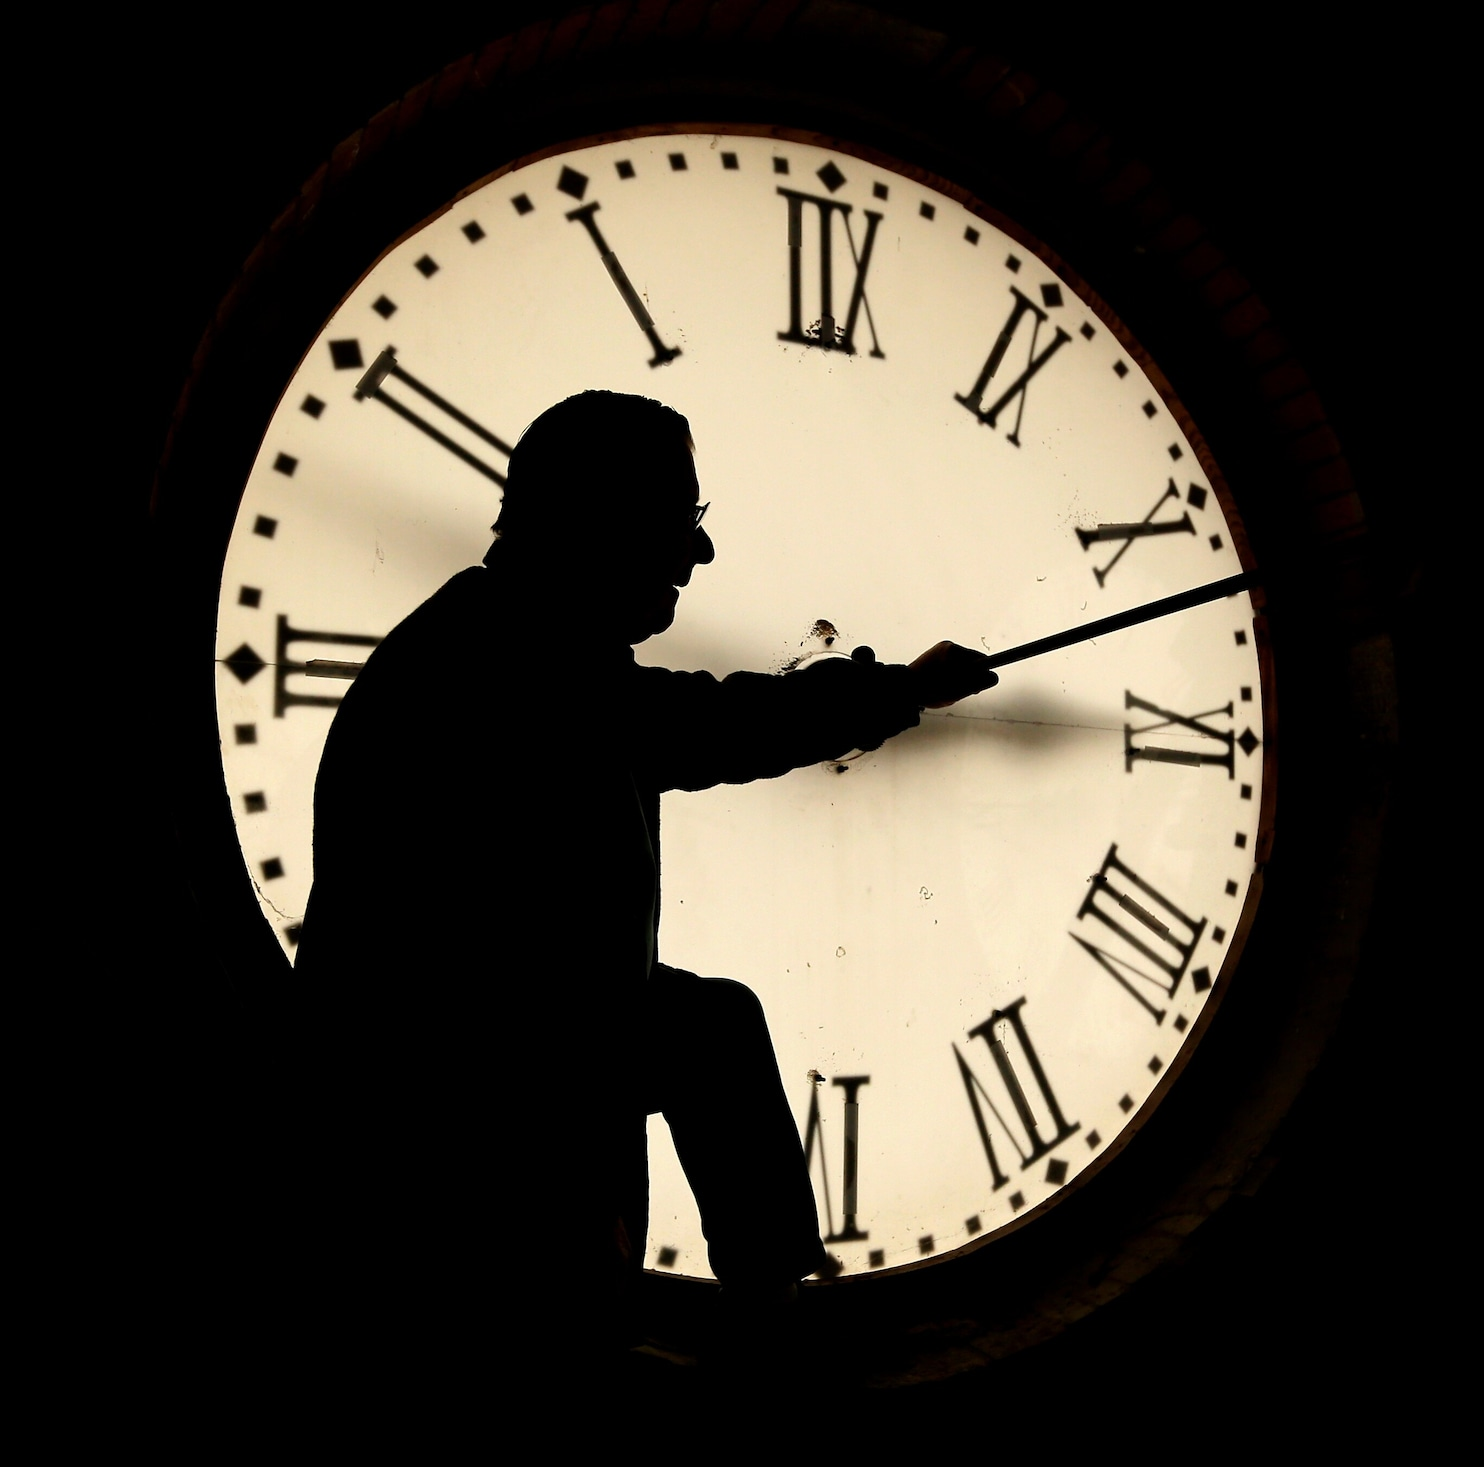 Daylight Saving Time Is Just One Way Standardized Time